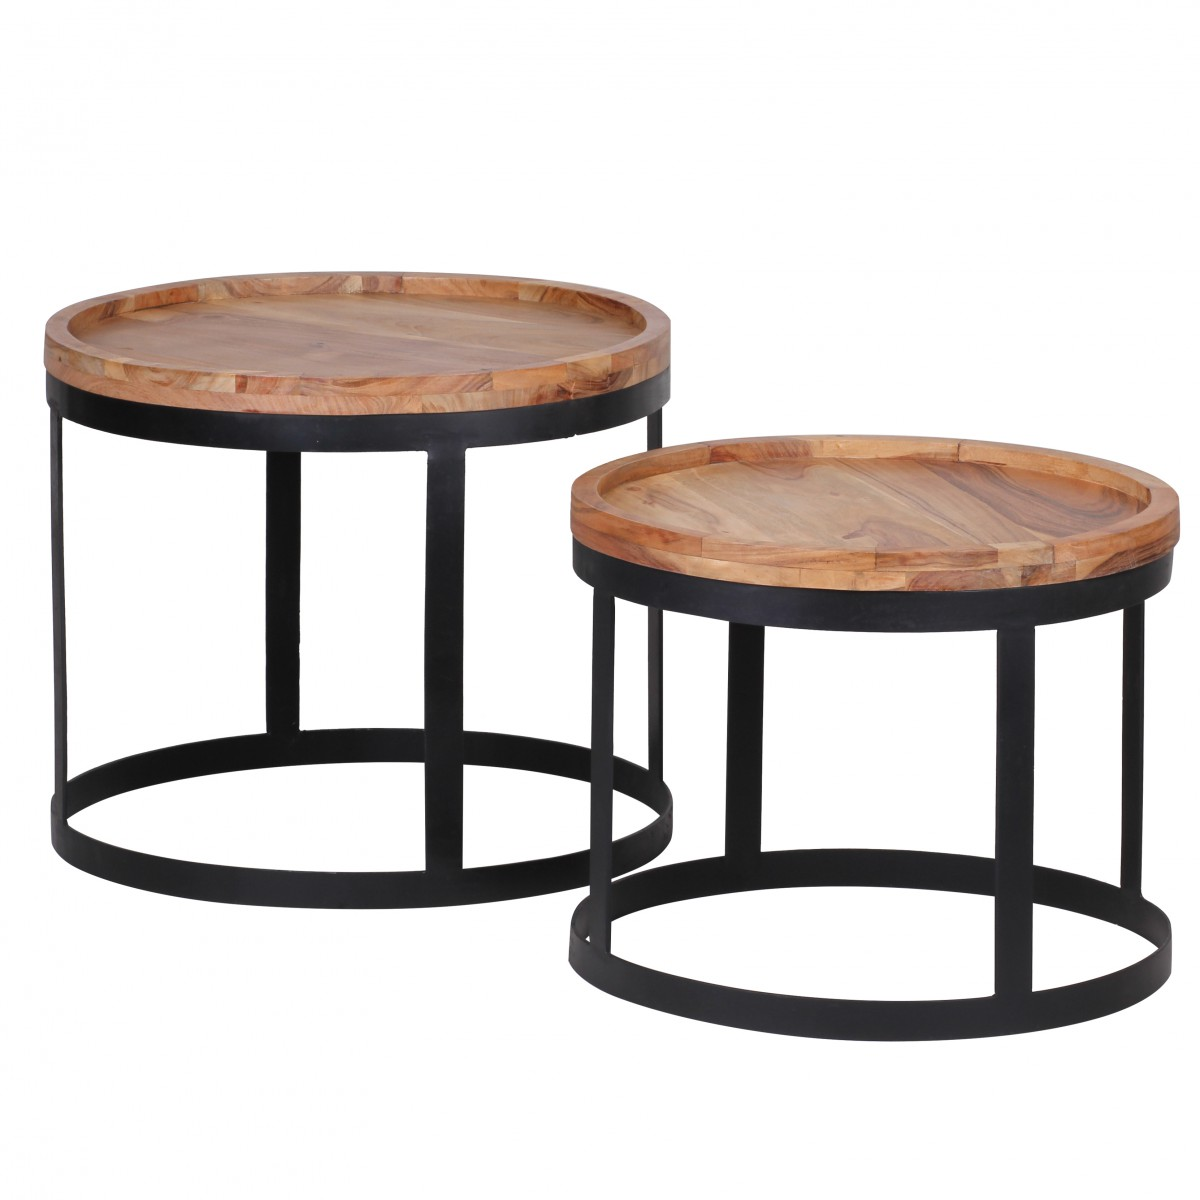 Solid wood living room side table set of 2 coffee tables new ebay